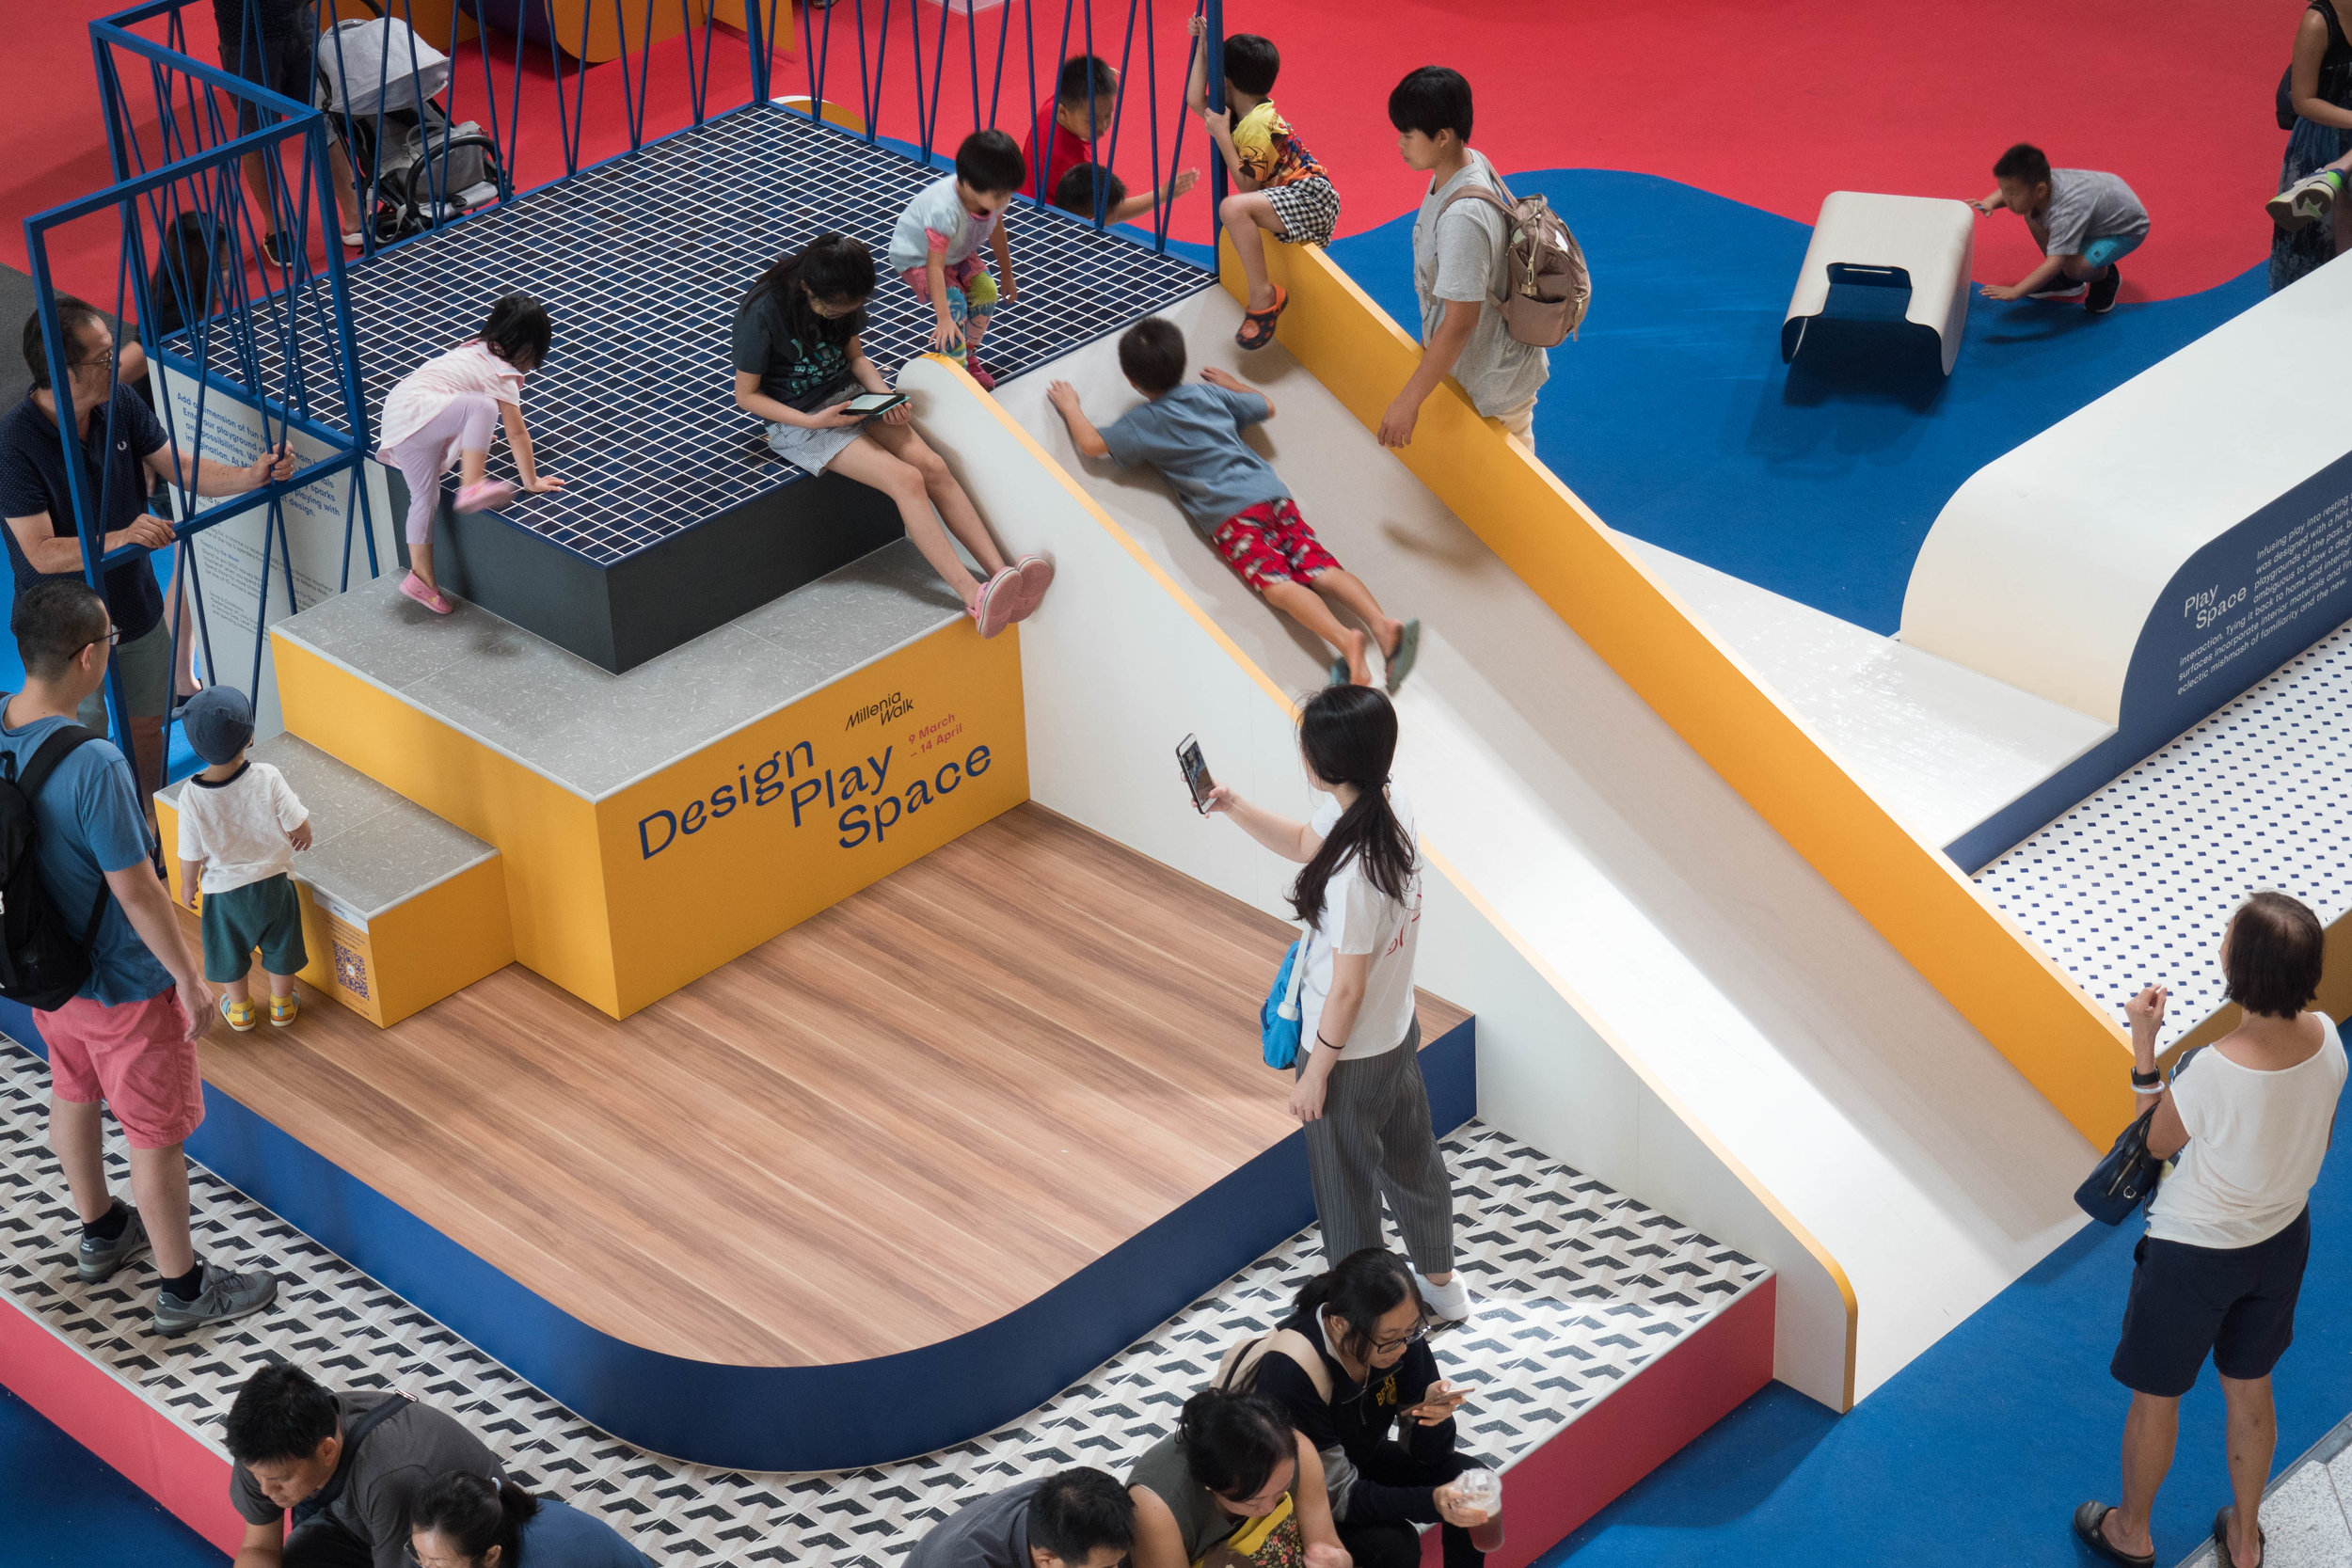 outeredit - millenia walk design play space - slide